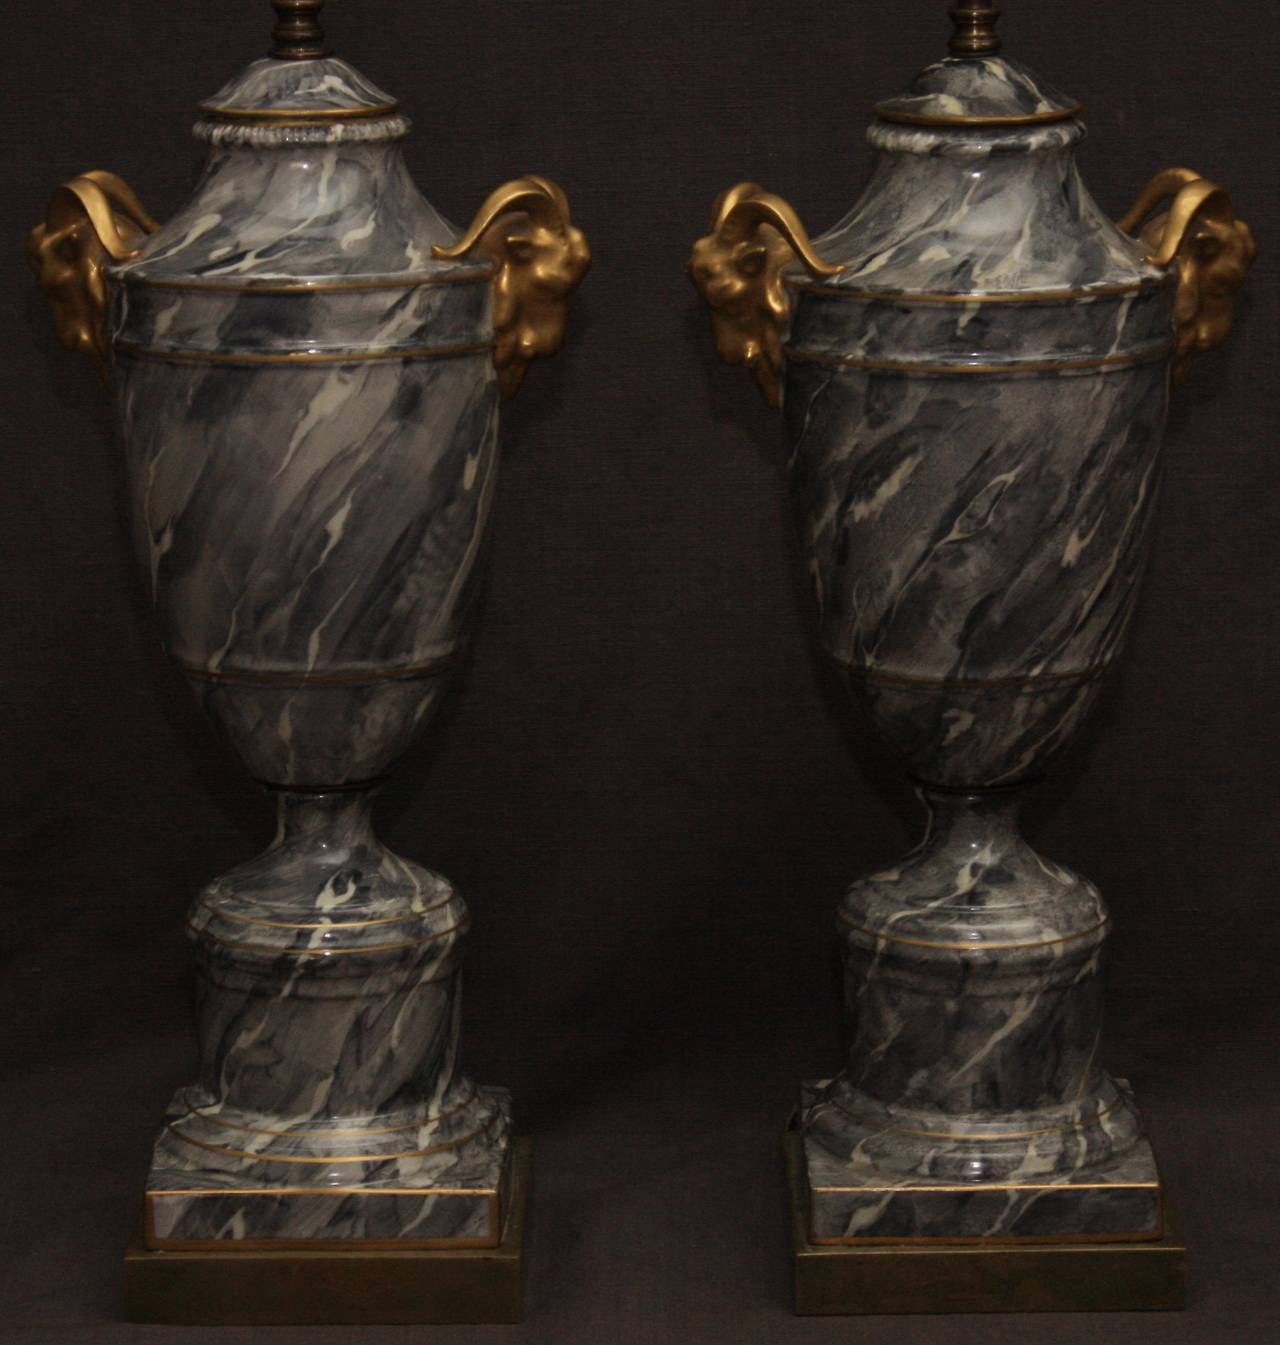 Pair of grey marbleized urn lamps. Pair of large vintage grey marbleized and gilt, Paris porcelain urn-form lamps with ram's head handles, France, 20th century.